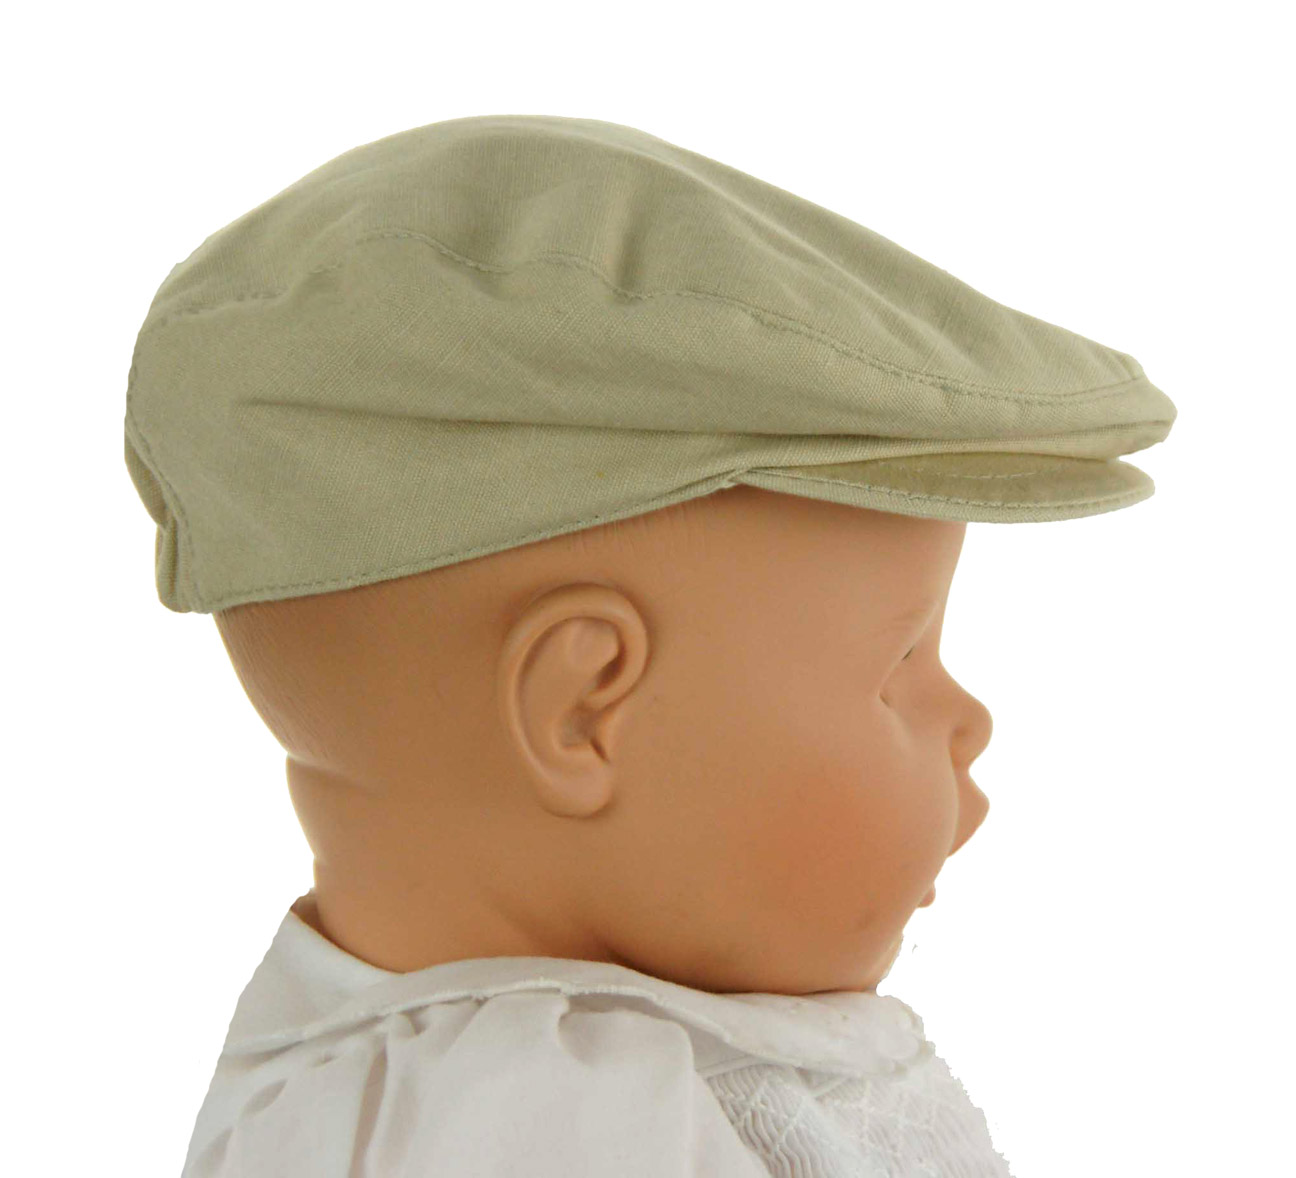 Newsboy Hat Ivy Hat Driving Caps Old Fashioned Hats For